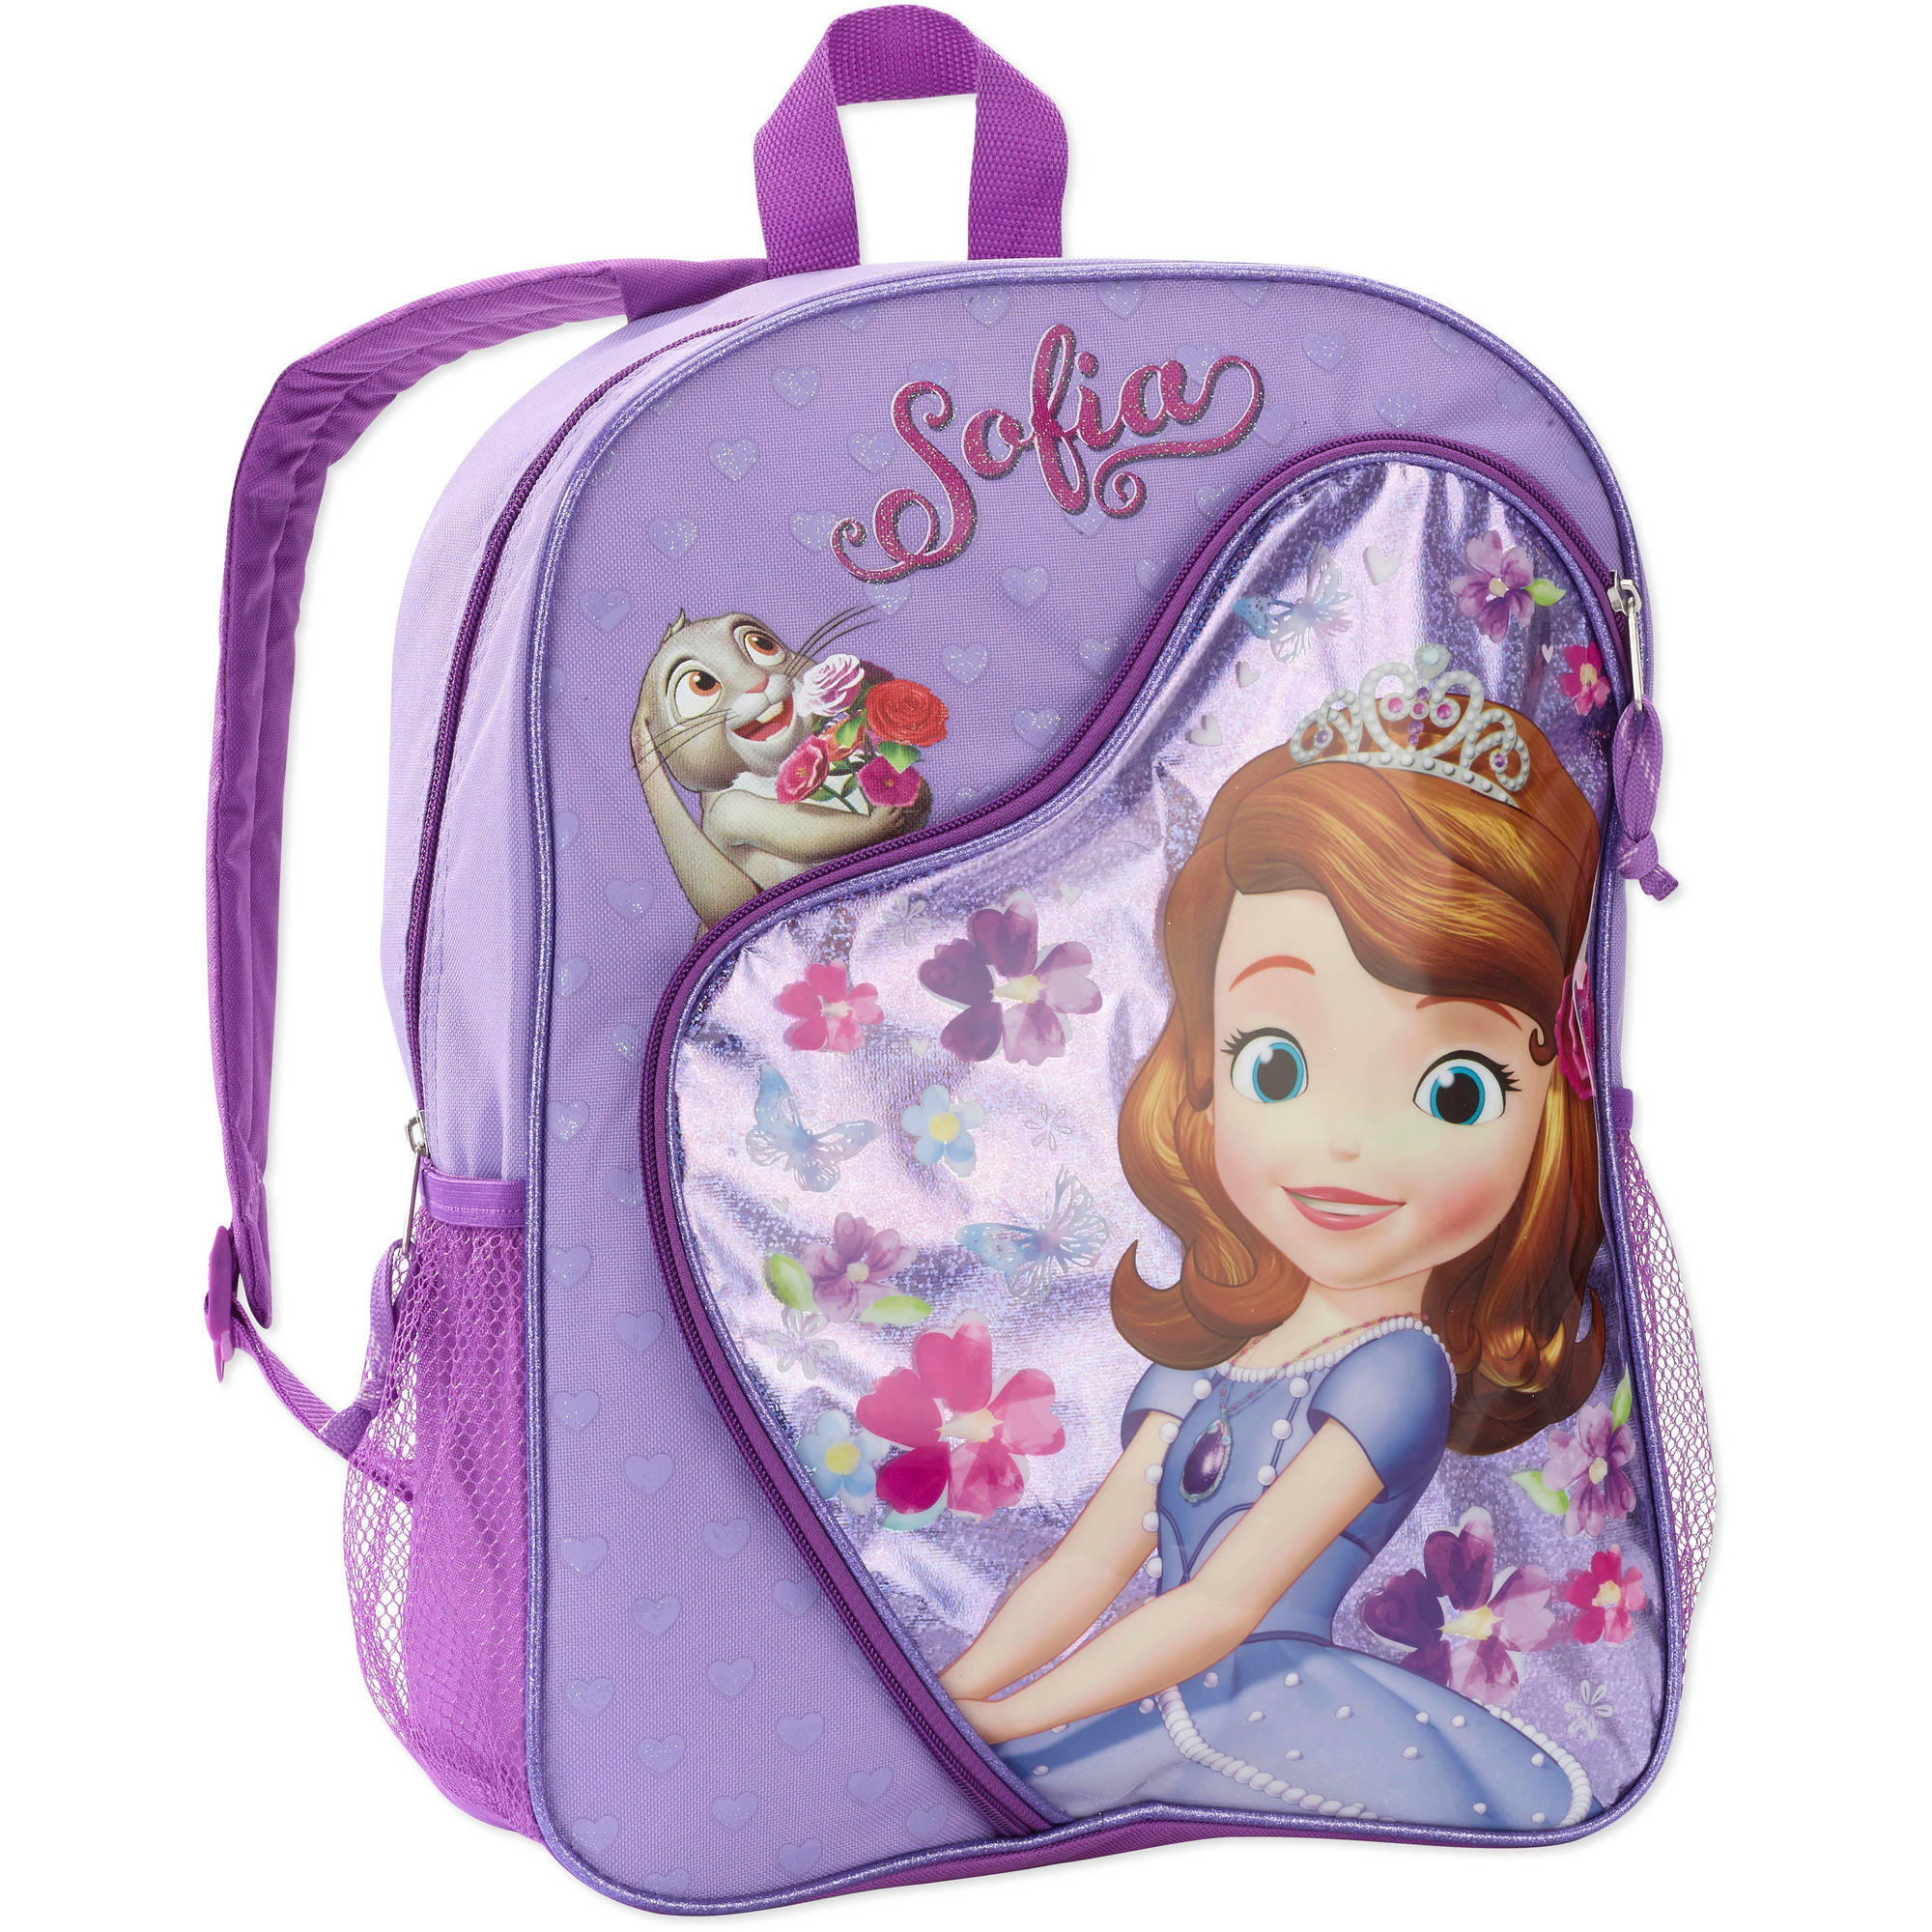 Disney Sofia The First 16'' Deluxe Heart Shaped Pocket and Polka Dots Kids Backpack